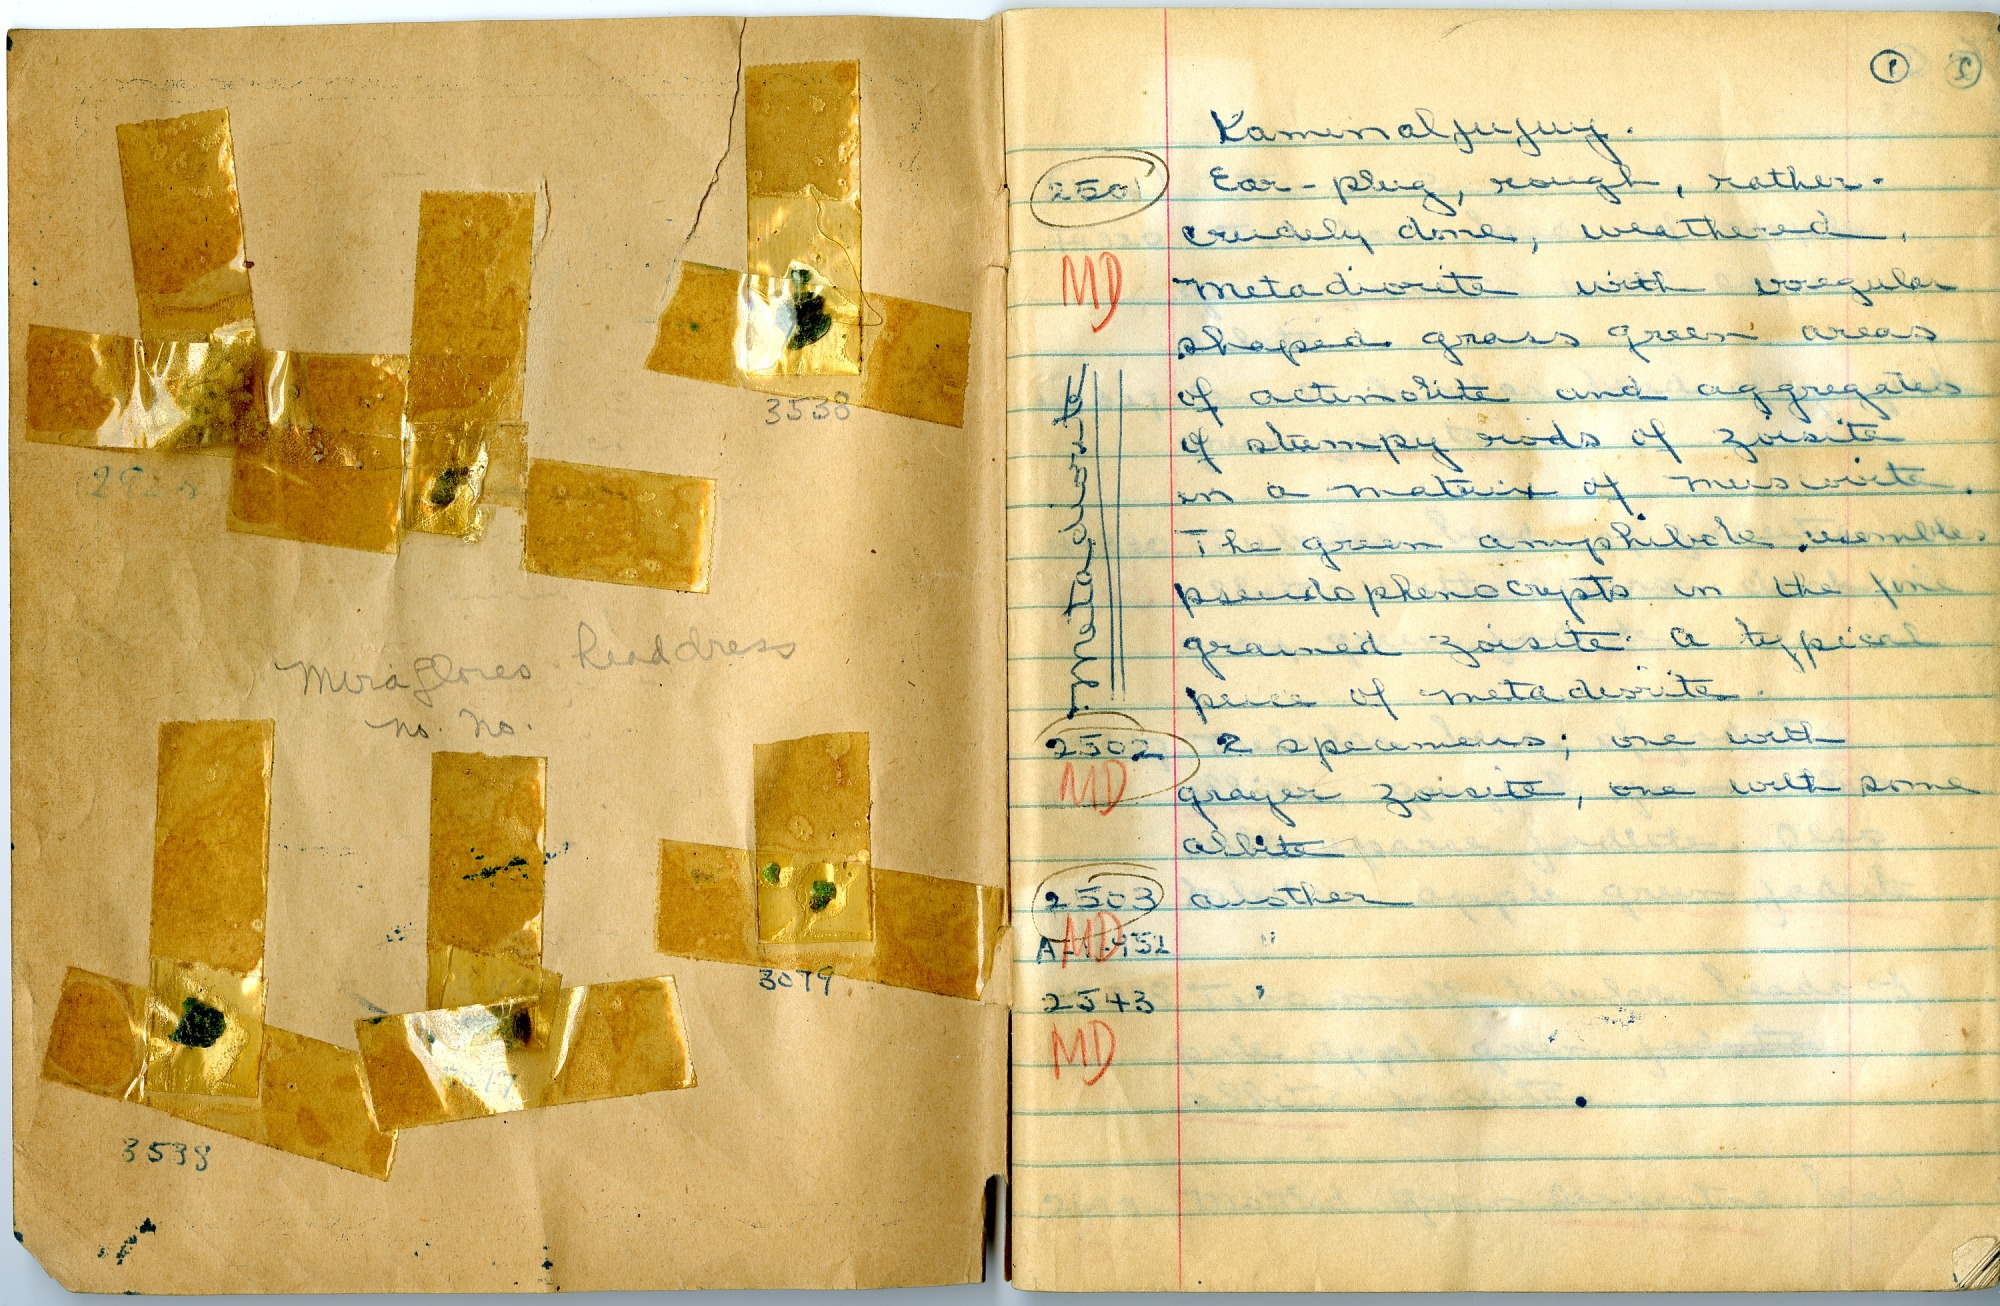 Inside Cover and First Page of William Foshag's Kaminaljuyu Field Notebook